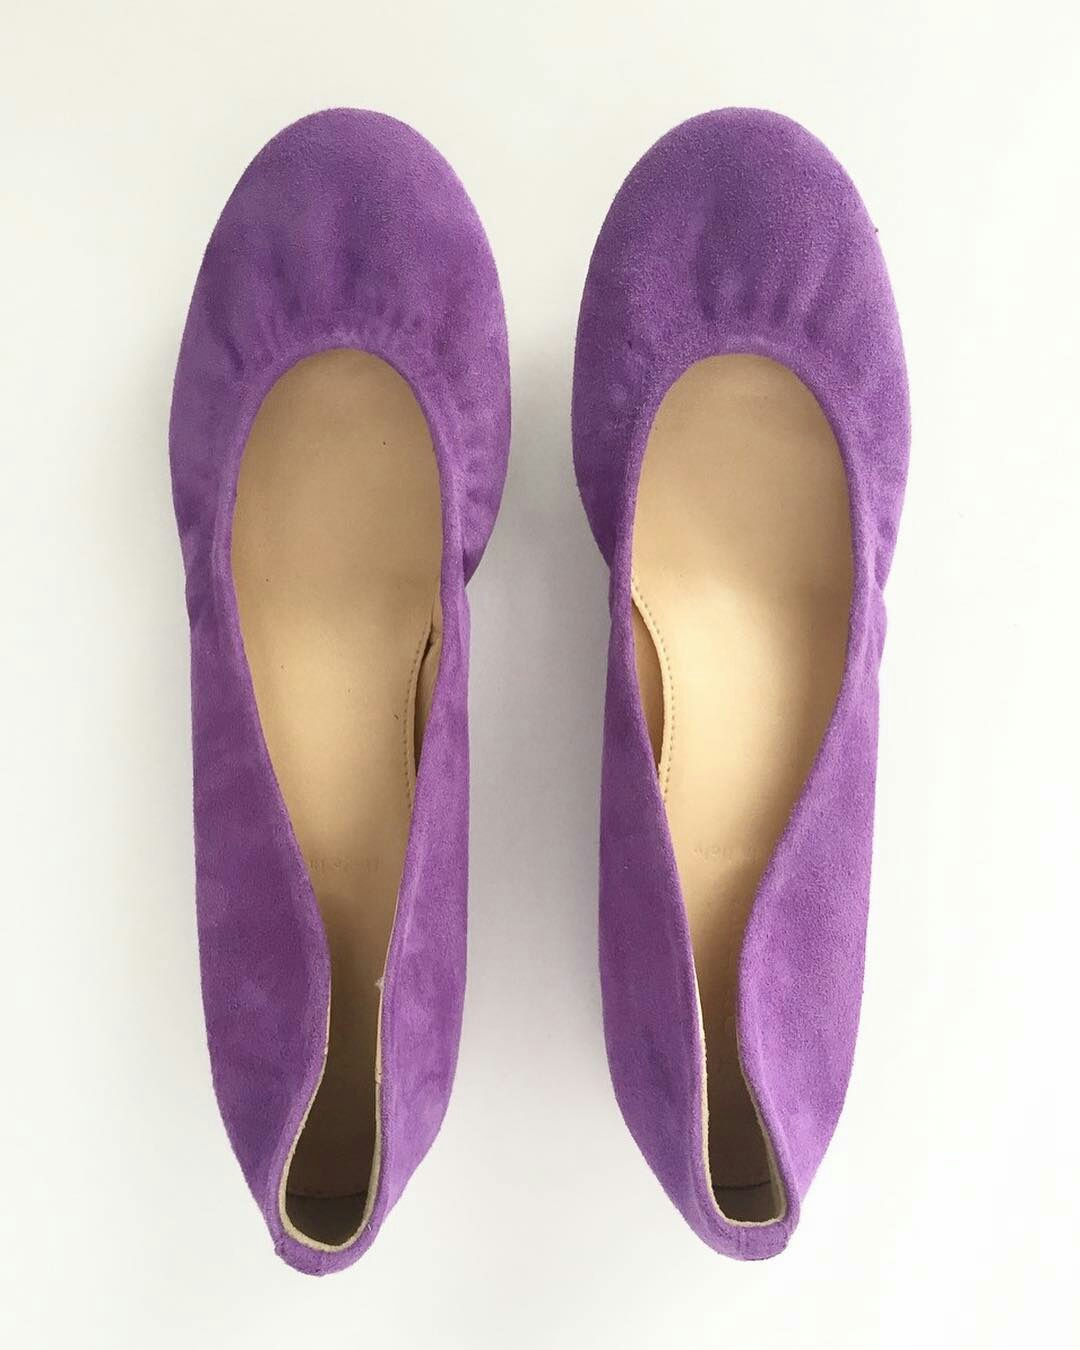 Shoegasm: Popping Ballet Flats